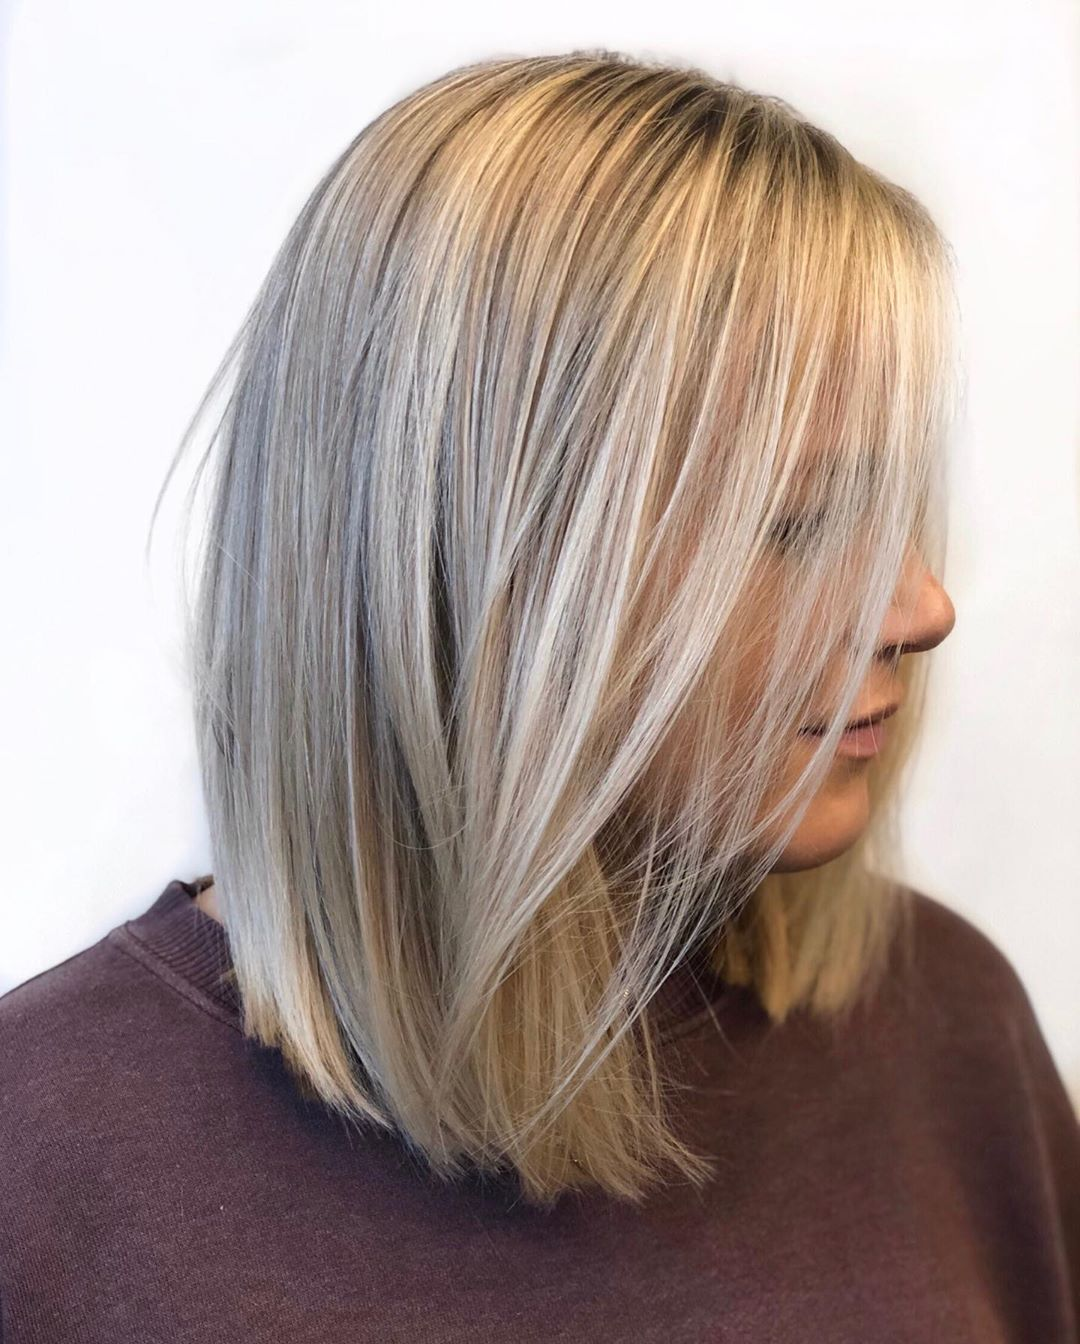 Long Sleek Bob Hairstyle